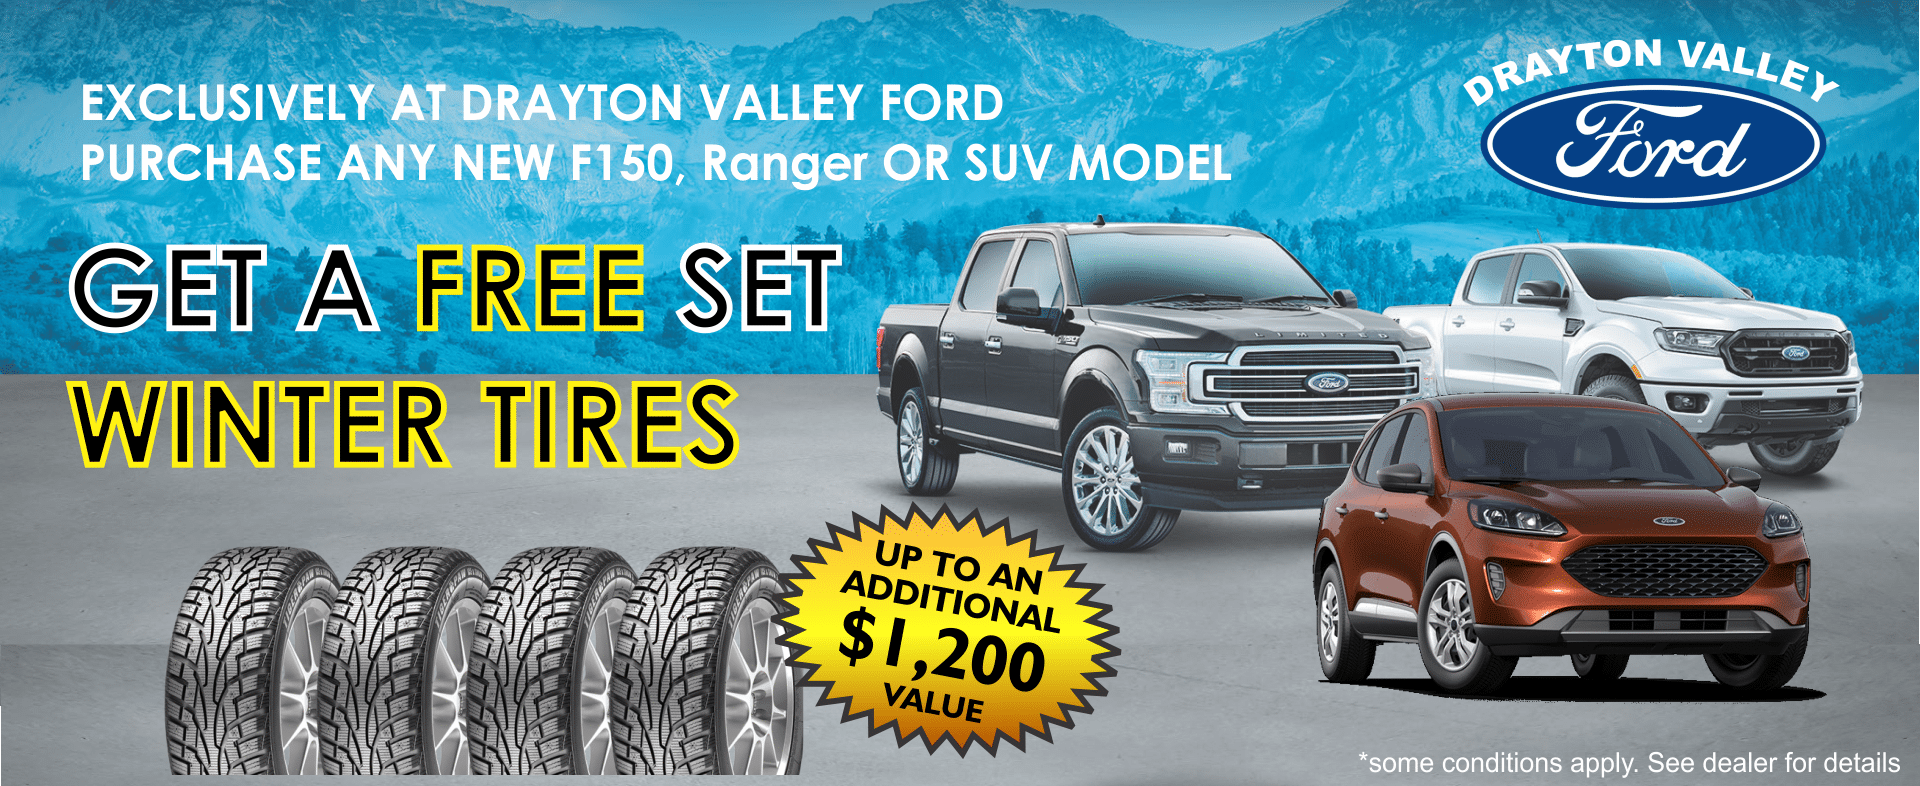 FREE WINTER TIRES WITH NEW FORD TRUCK AND SUV AT DRAYTON VALLEY FORD ALBERTA